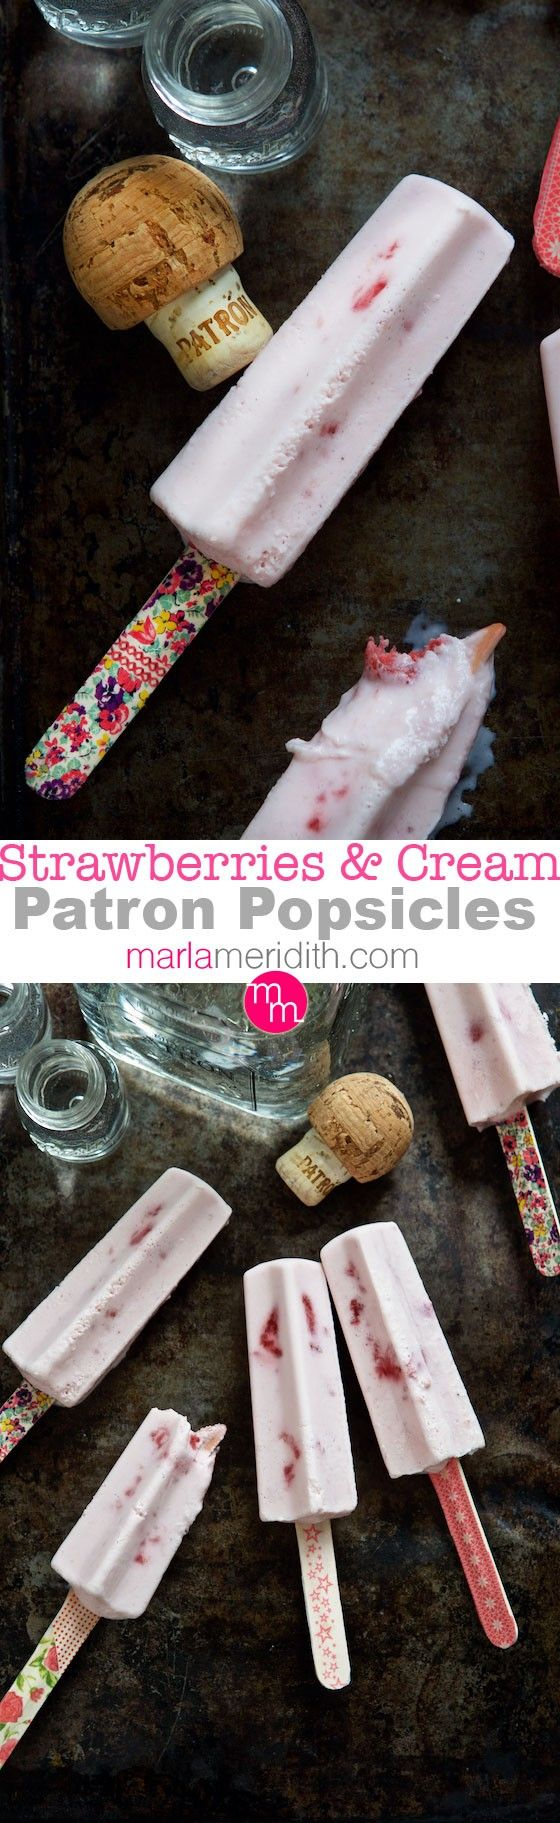 Strawberries & Cream Patron Popsicles | Serve these at your next outdoor party! MarlaMeridith.com ( @marlameridith )